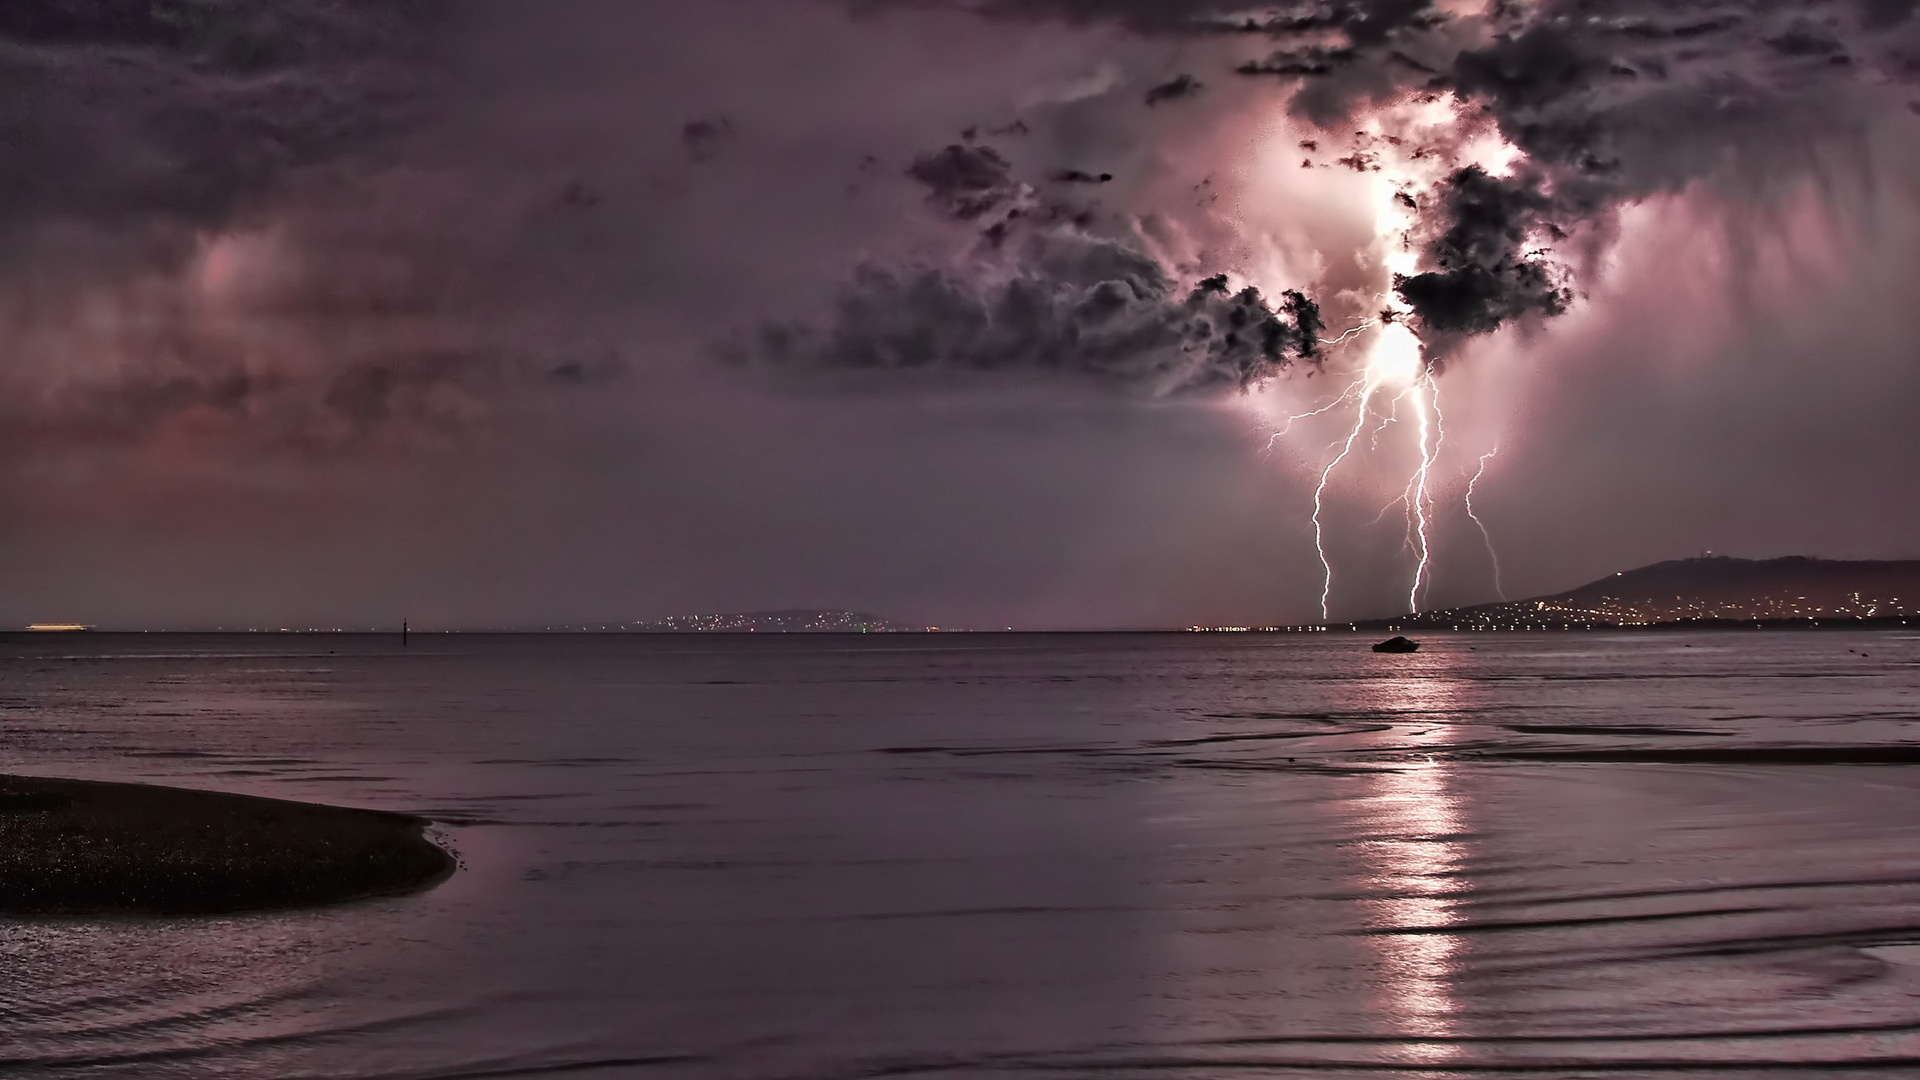 Lightning storm rain clouds electric water reflection ...